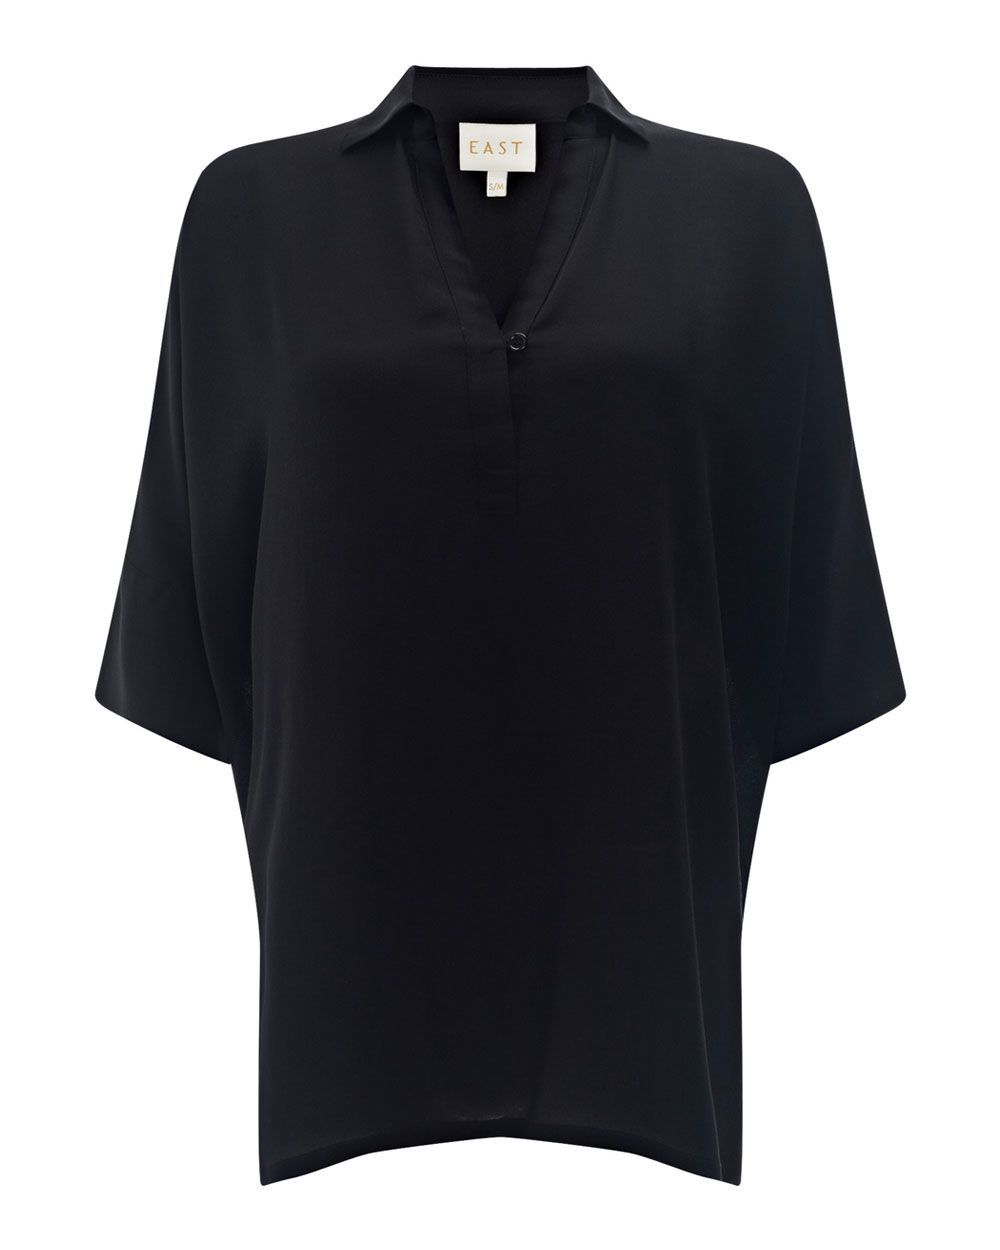 Oversized Silk Shirt, Black - neckline: shirt collar/peter pan/zip with opening; pattern: plain; length: below the bottom; style: blouse; predominant colour: black; occasions: casual, creative work; fibres: silk - 100%; fit: body skimming; sleeve length: short sleeve; sleeve style: standard; texture group: crepes; pattern type: fabric; season: a/w 2015